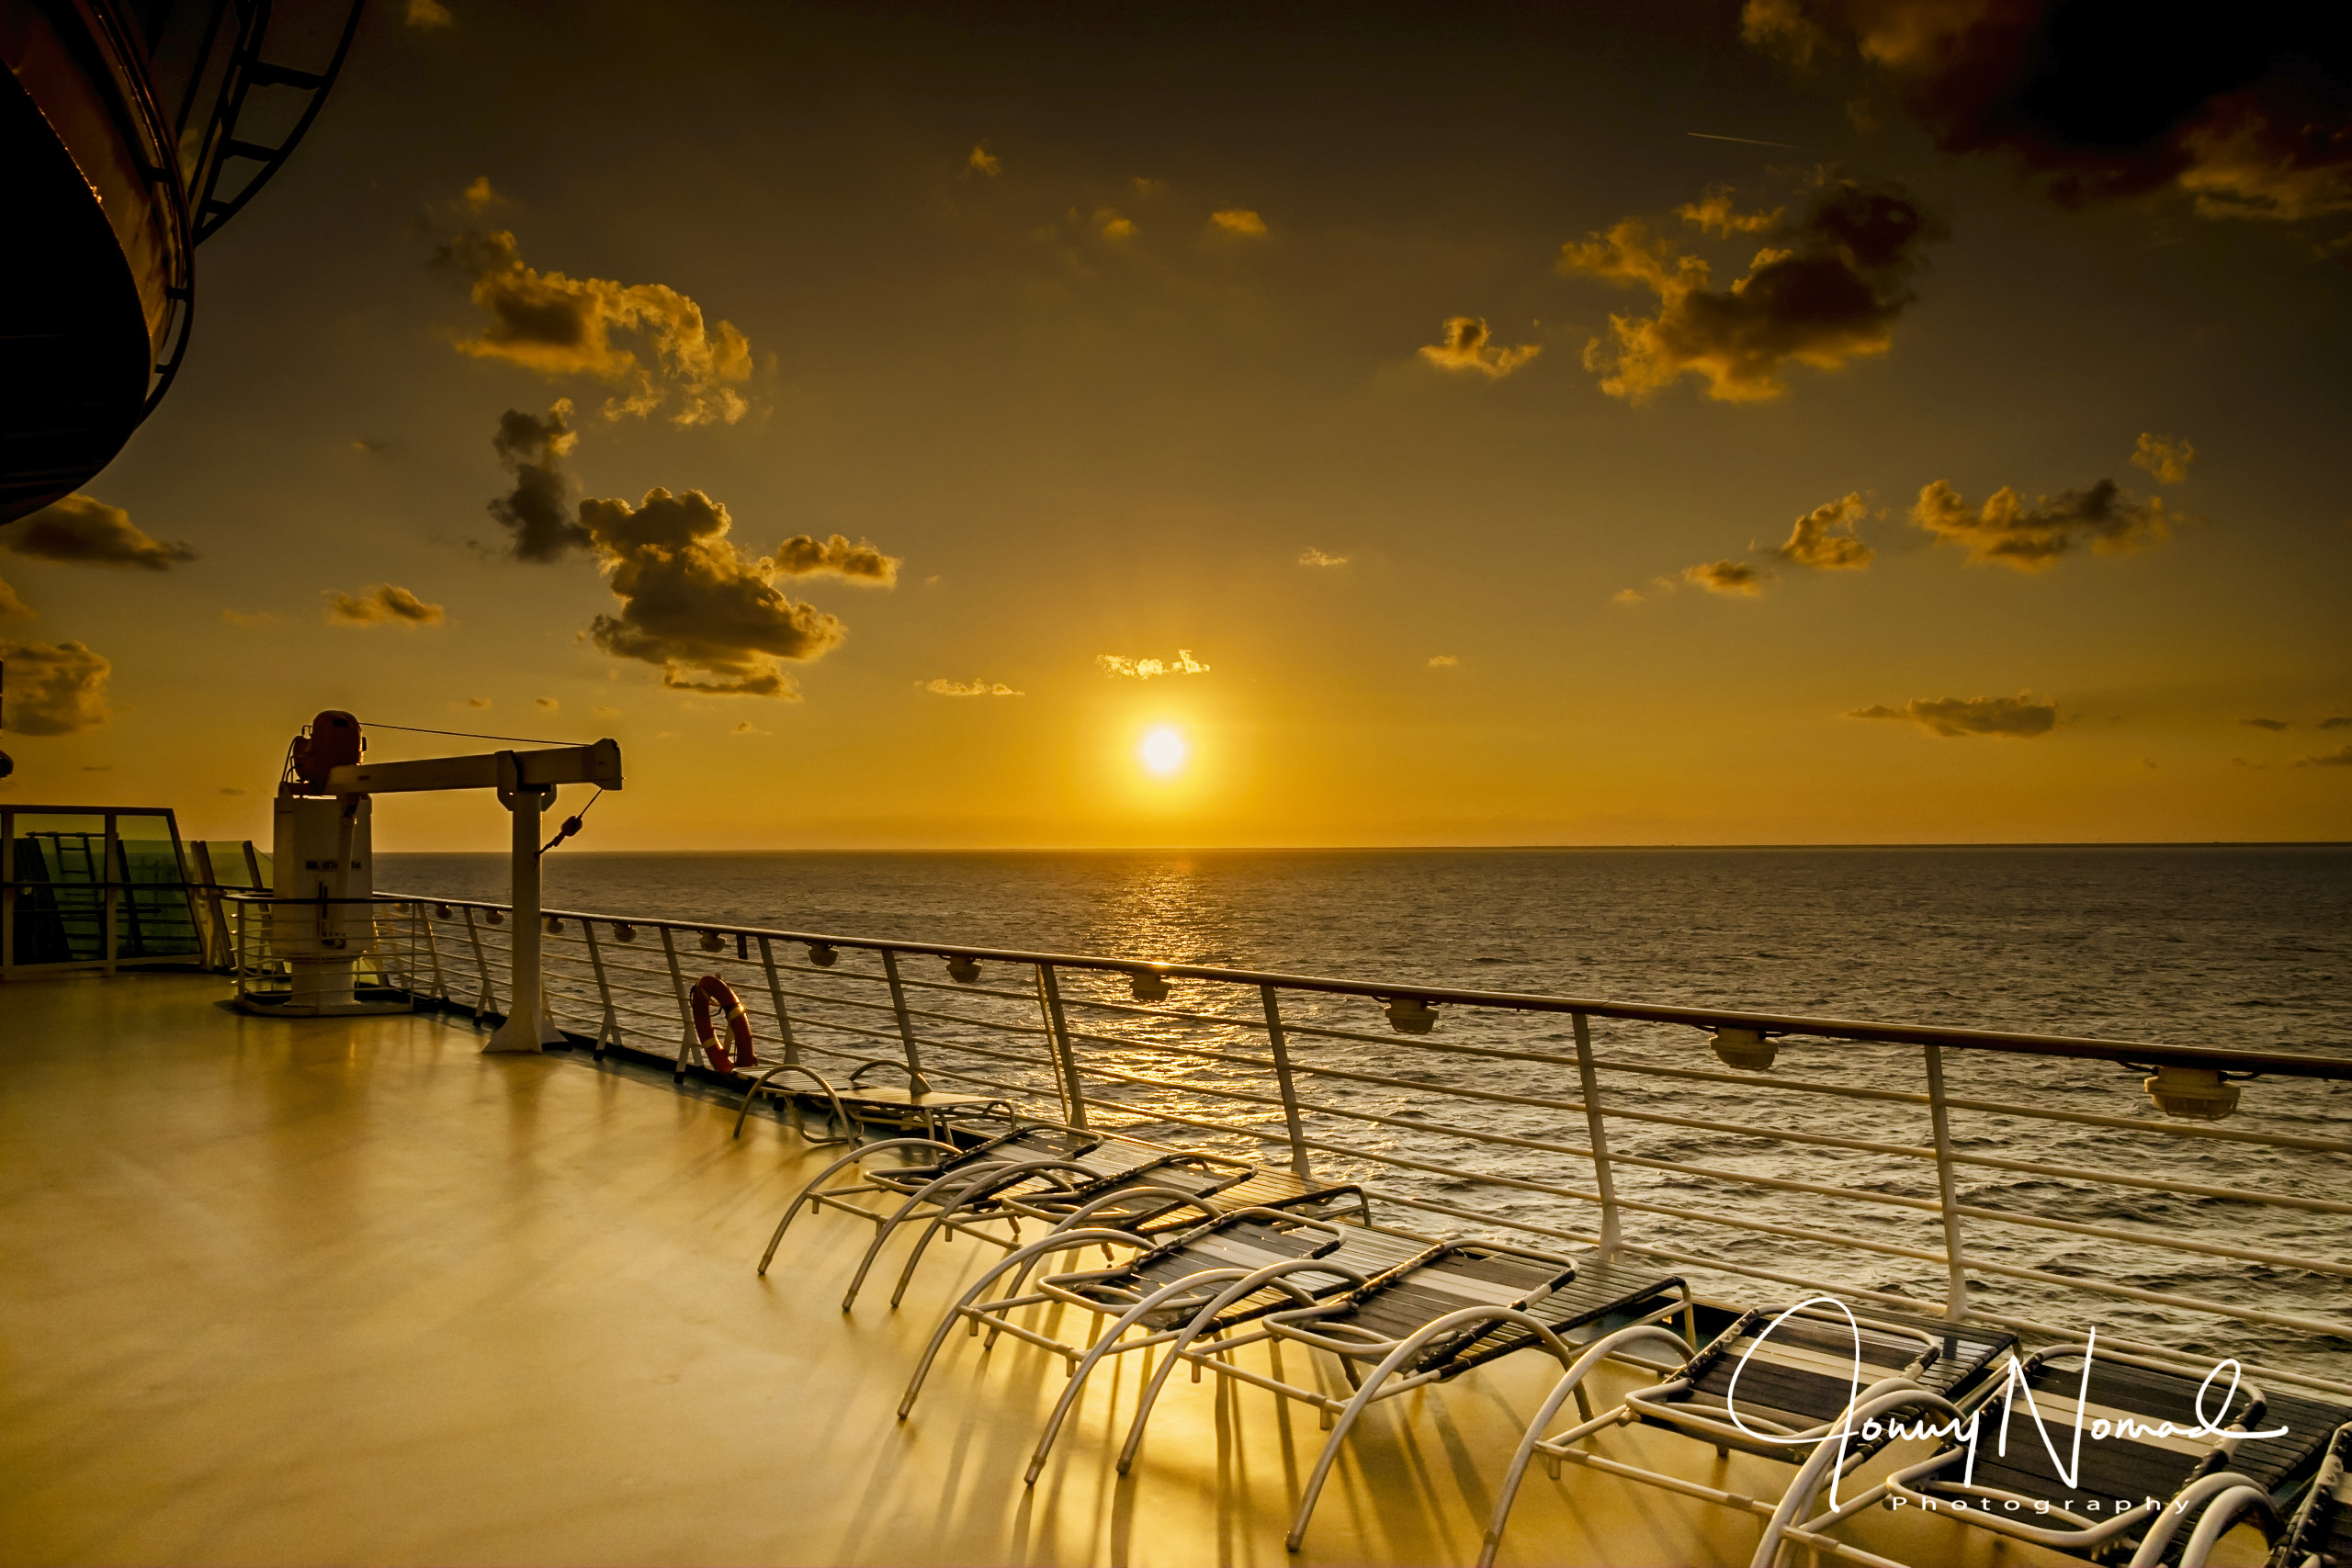 On Deck at Sunset